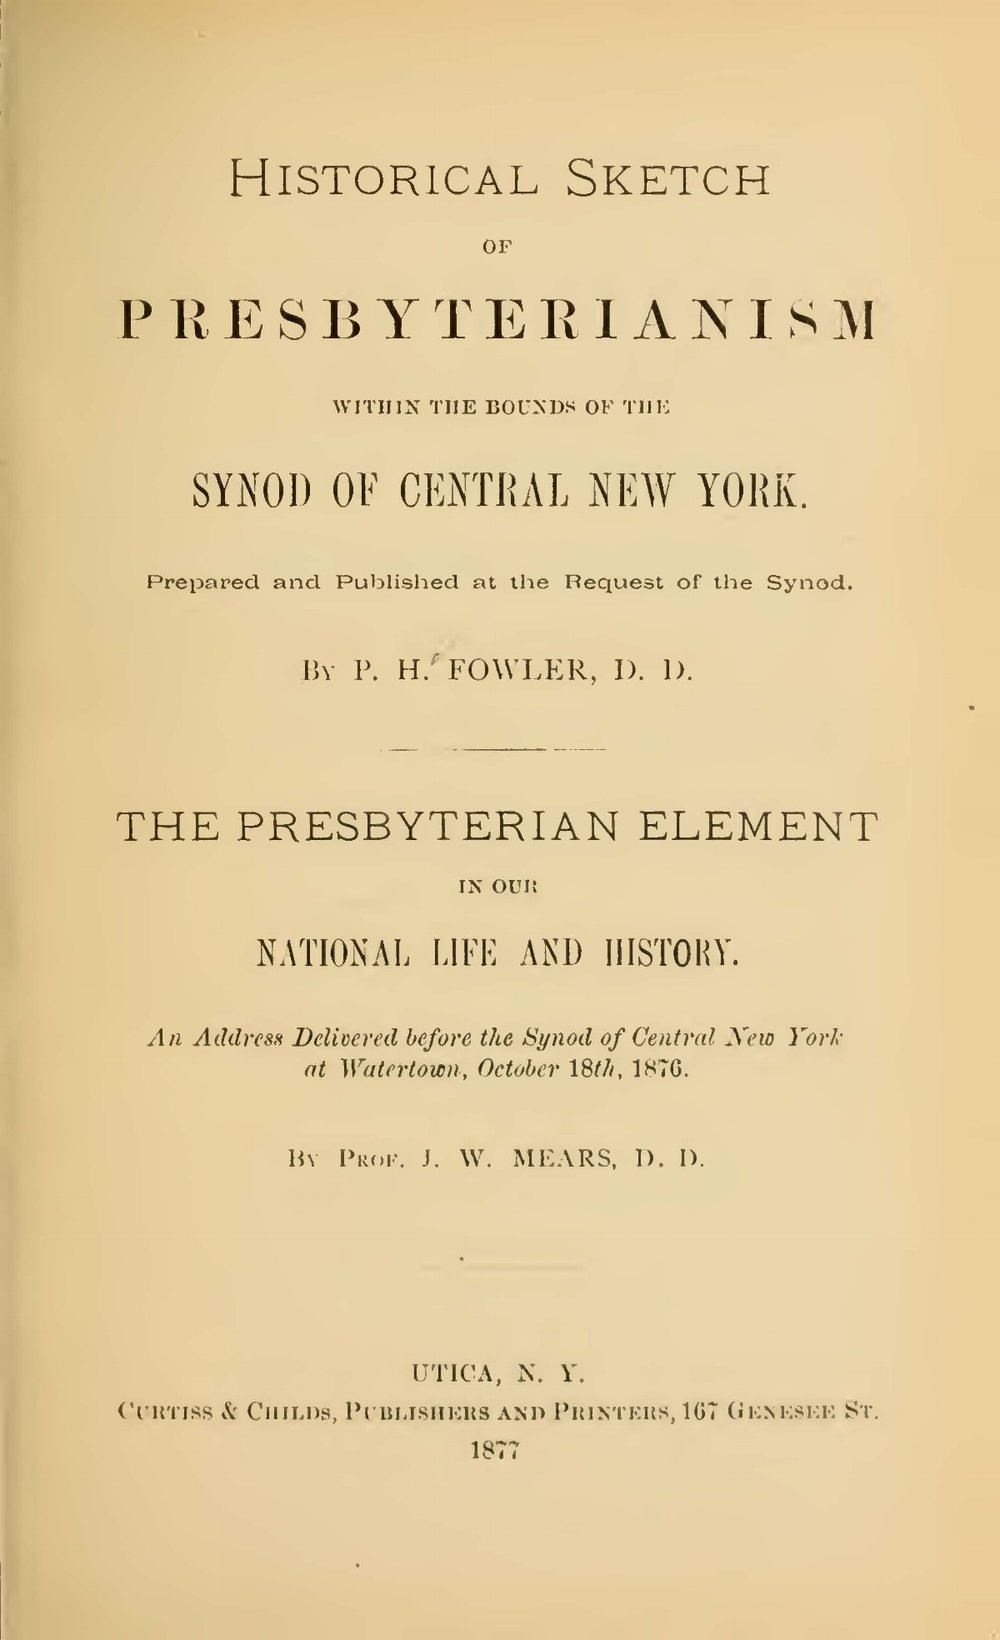 Mears, John William, The Presbyterian Element in Our National Life and History Title Page.jpg